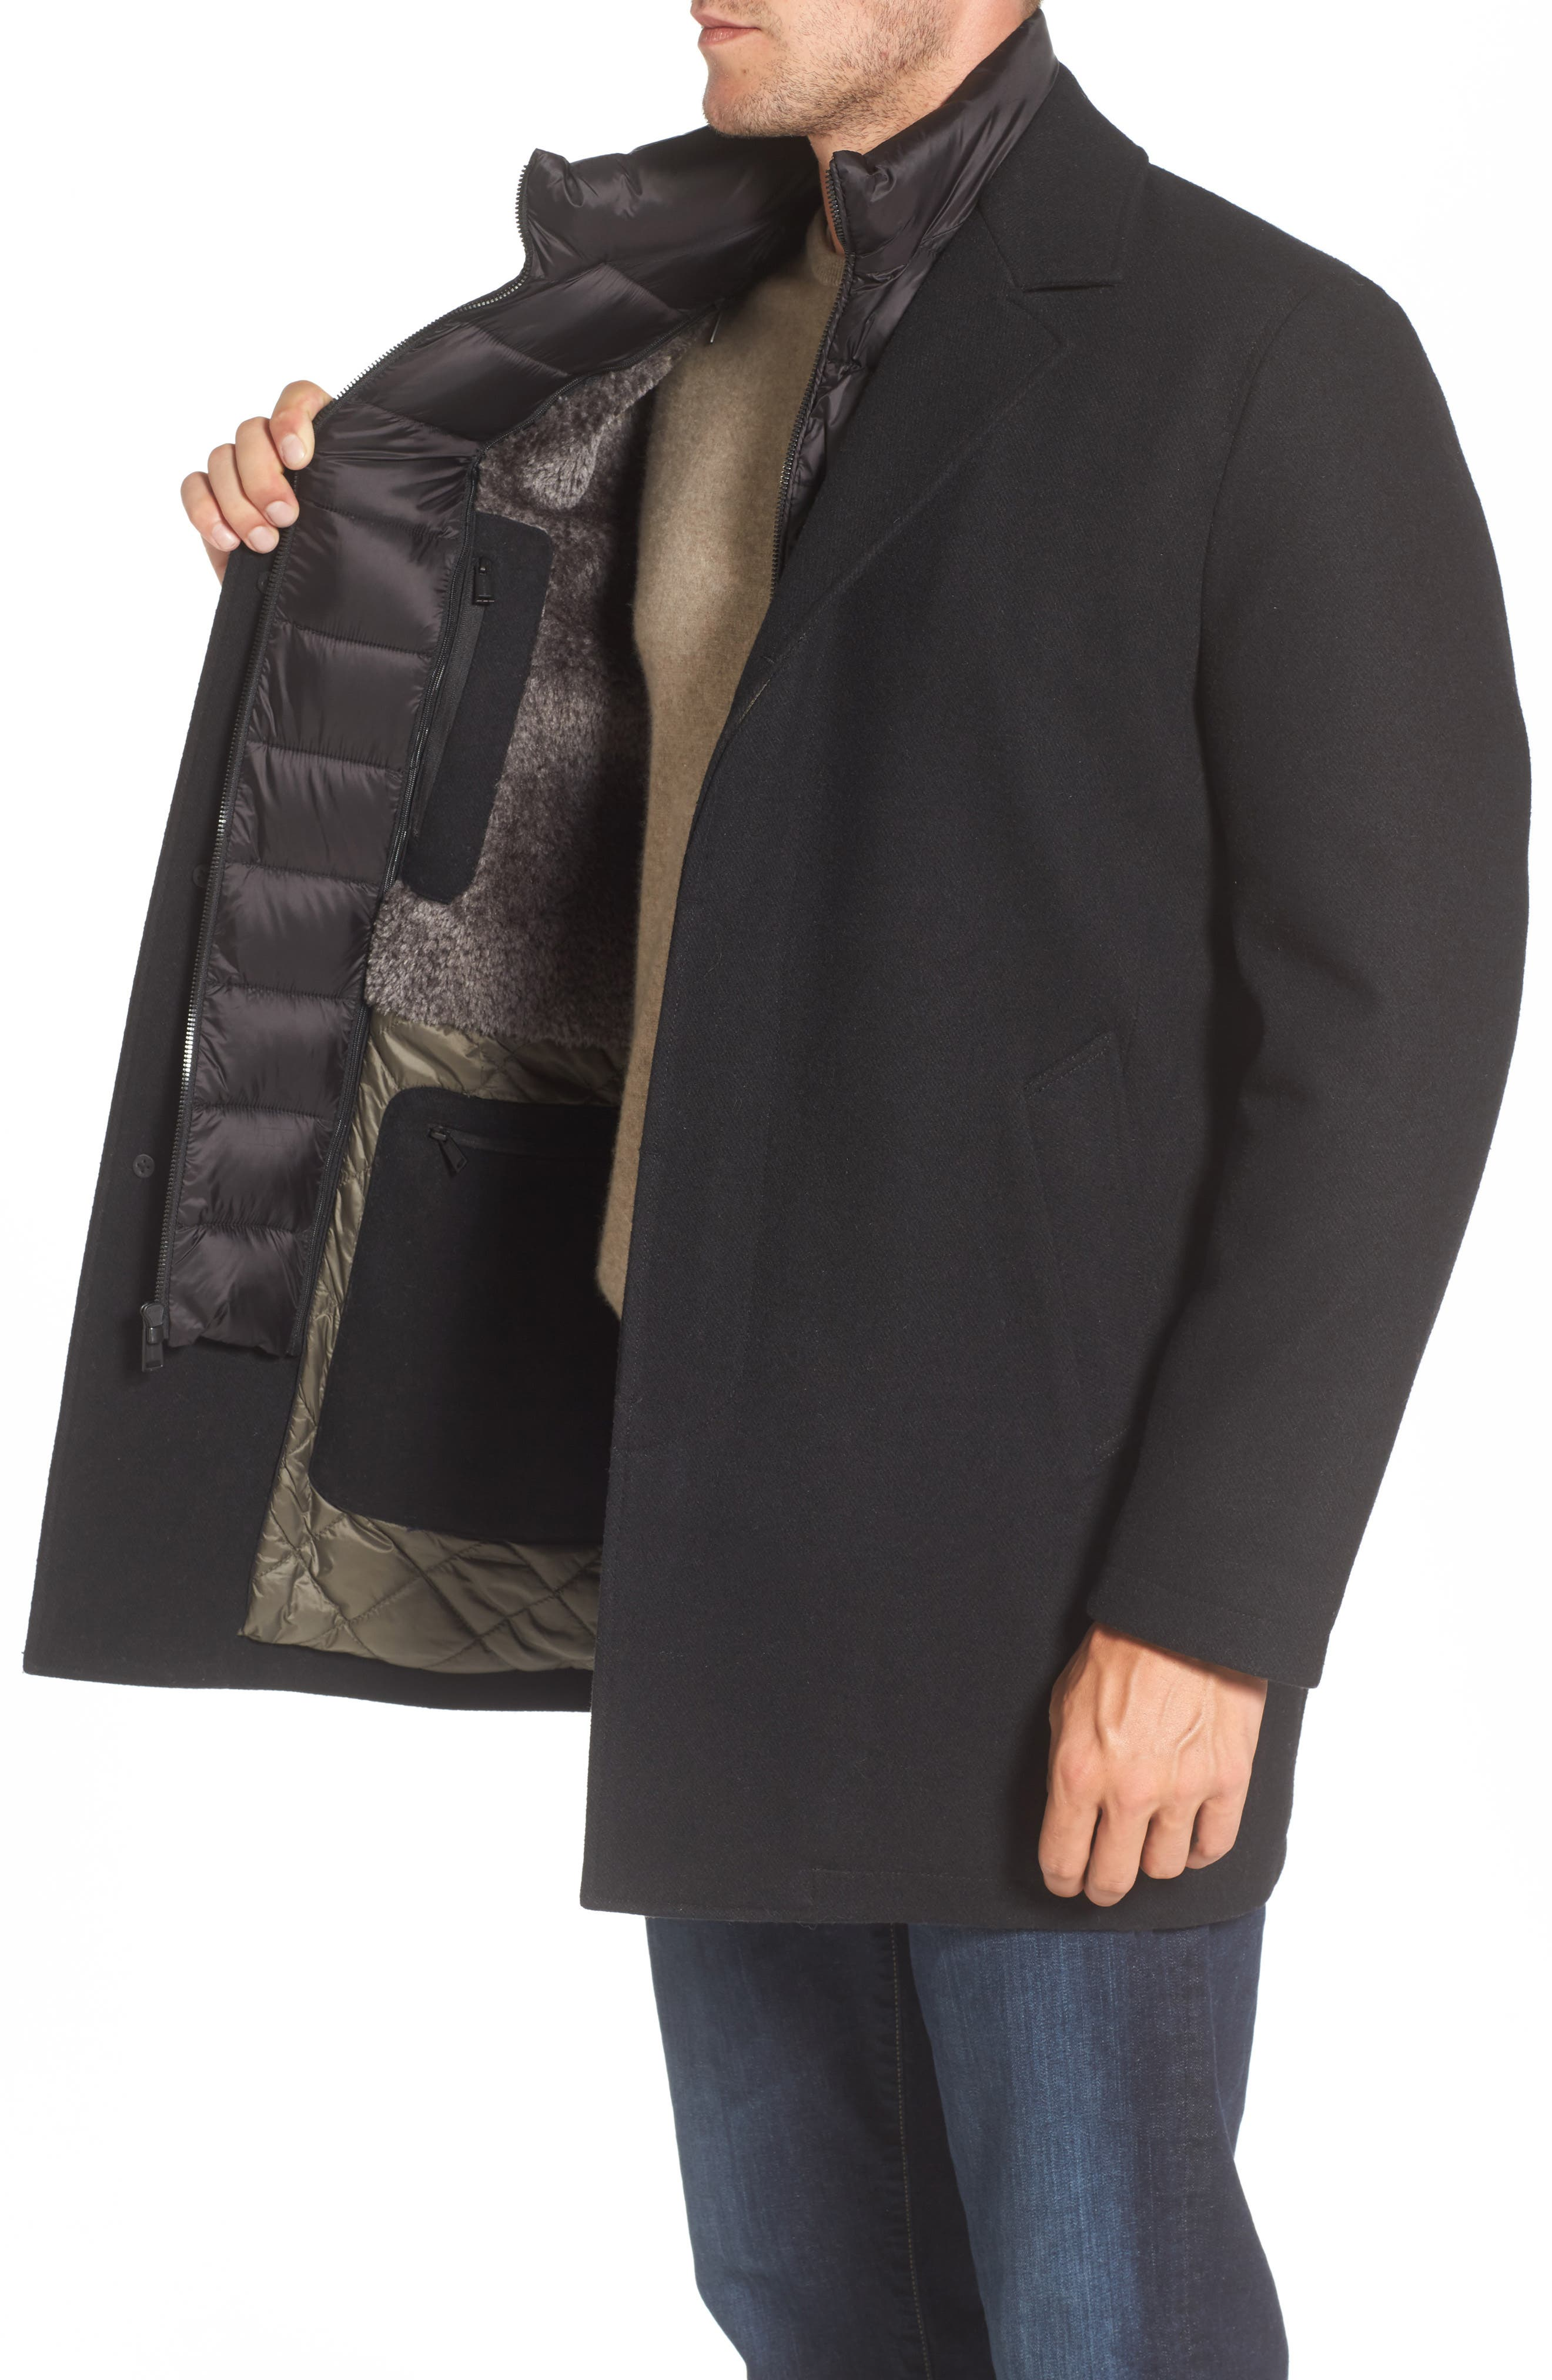 Water Repellent Jacket with Inset Bib & Faux Fur Lining,                             Alternate thumbnail 3, color,